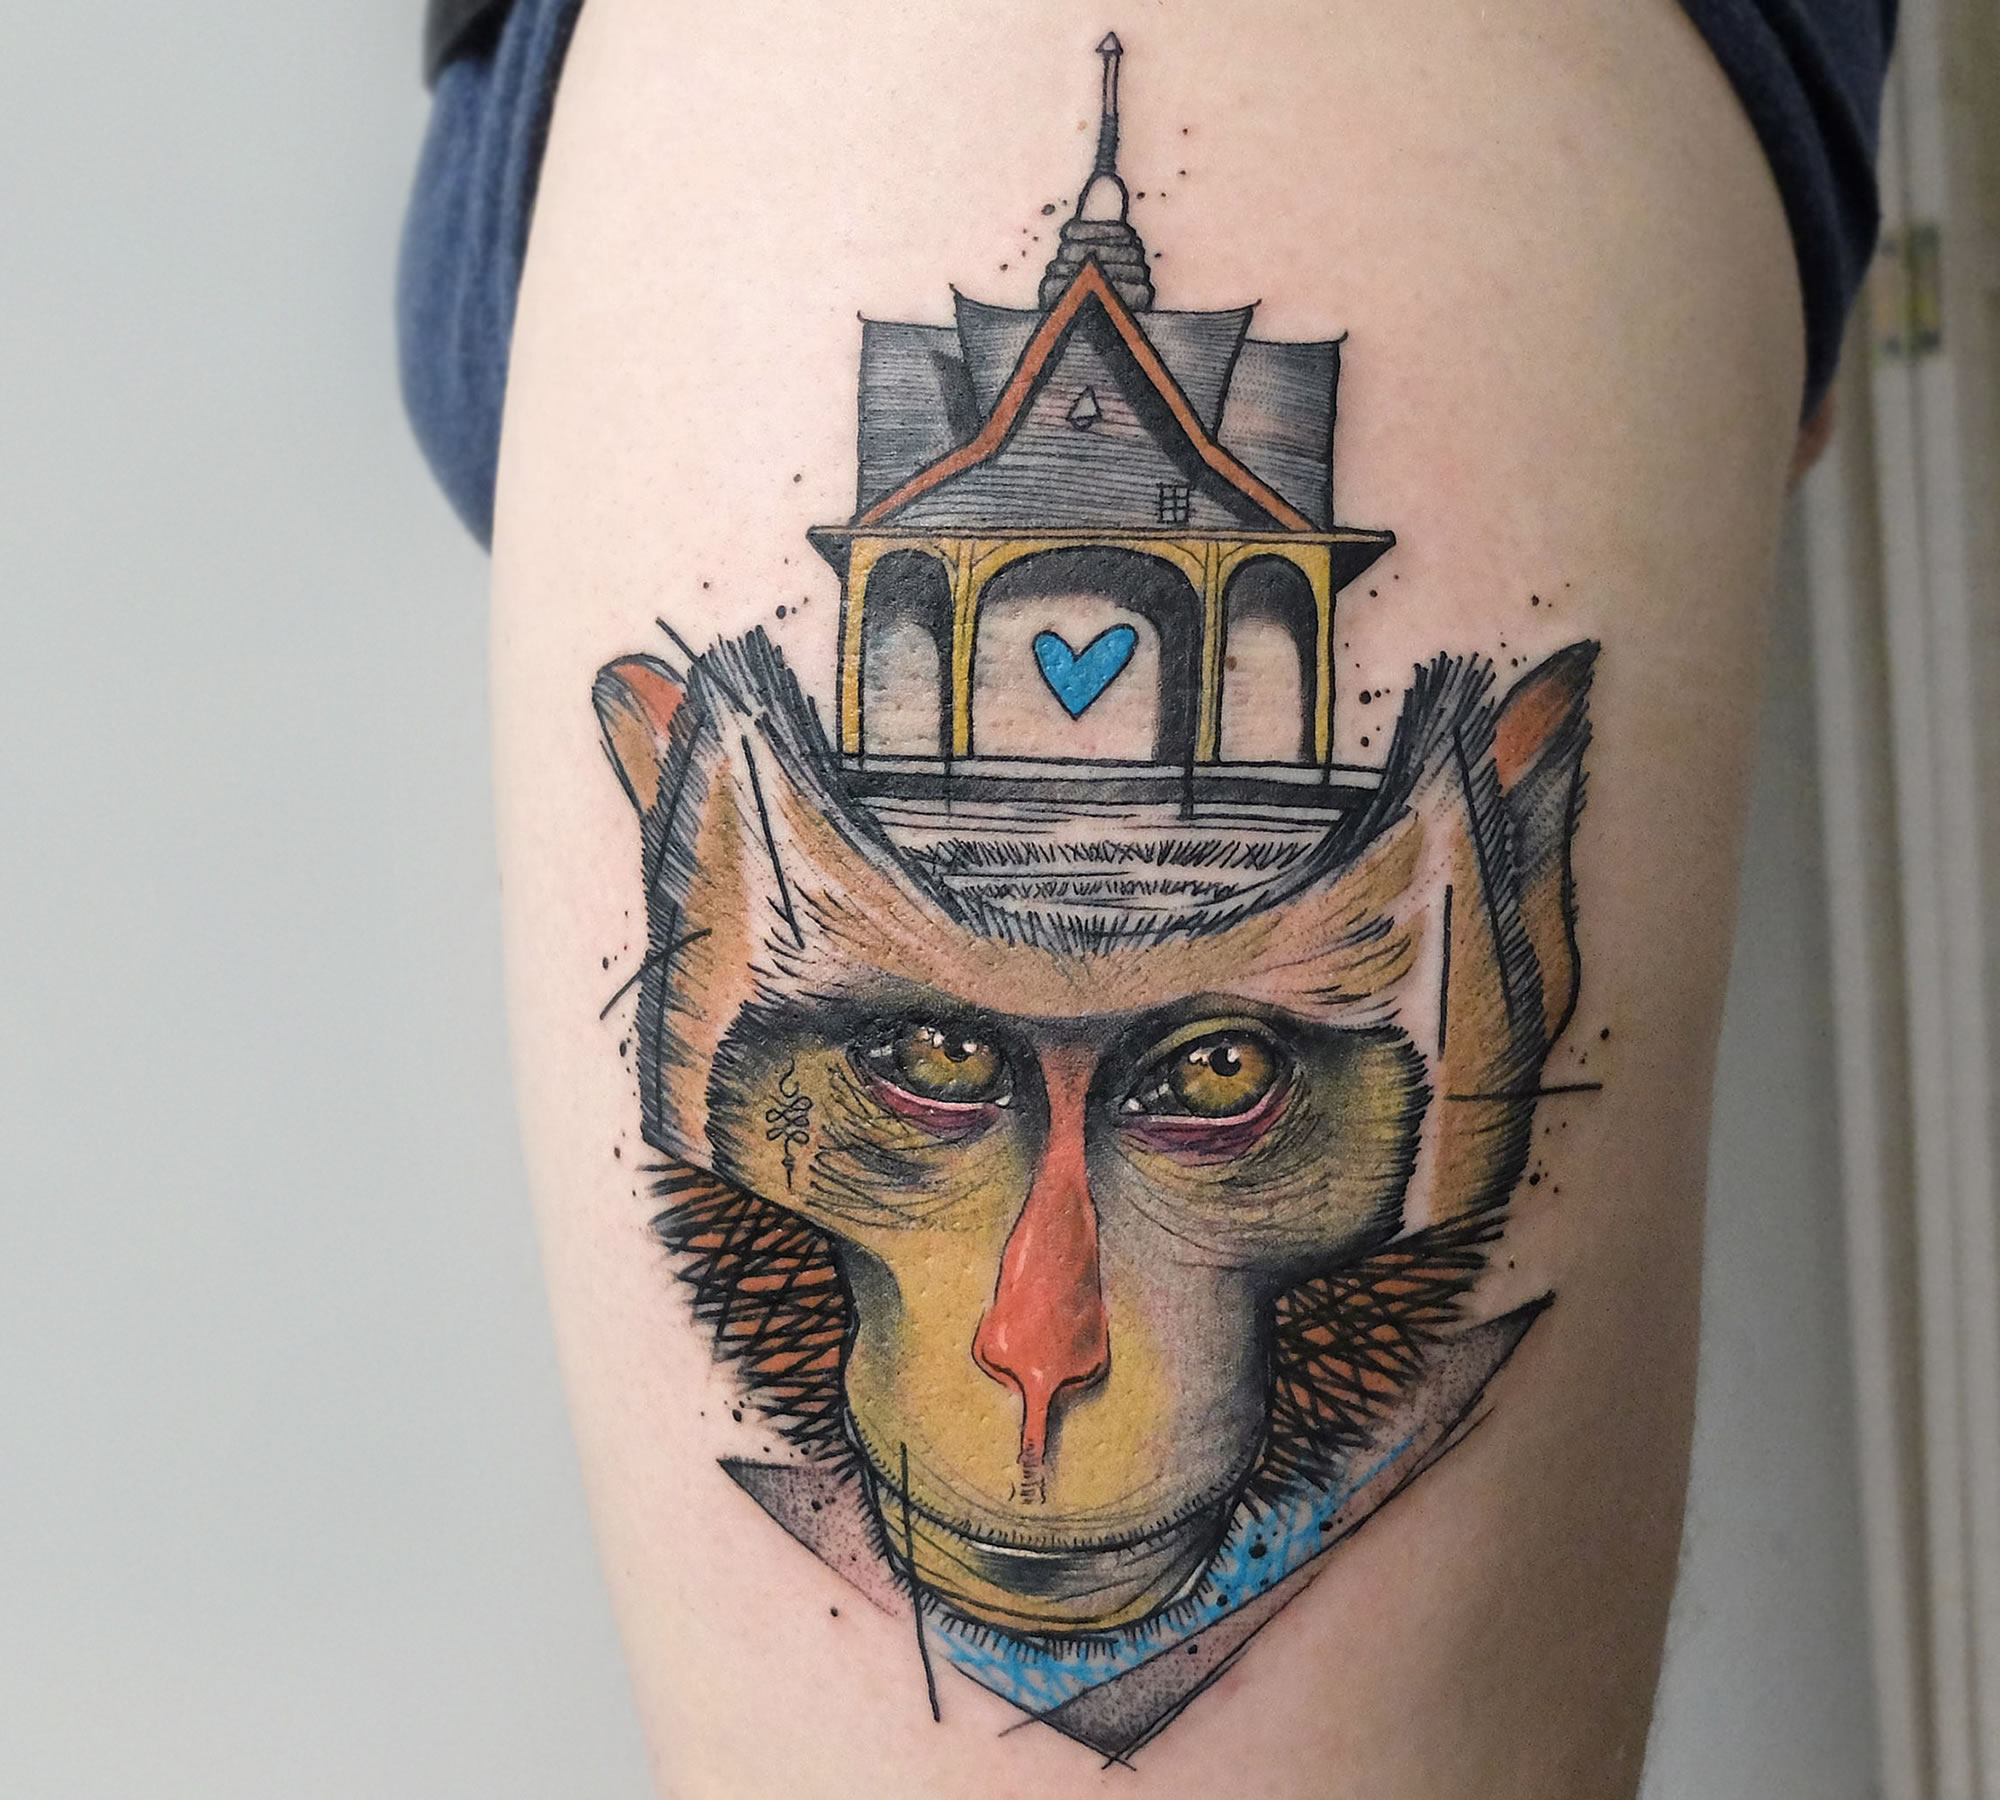 Elschwino's Vibrant Tattoos Favor Artistic Expression Over Rules